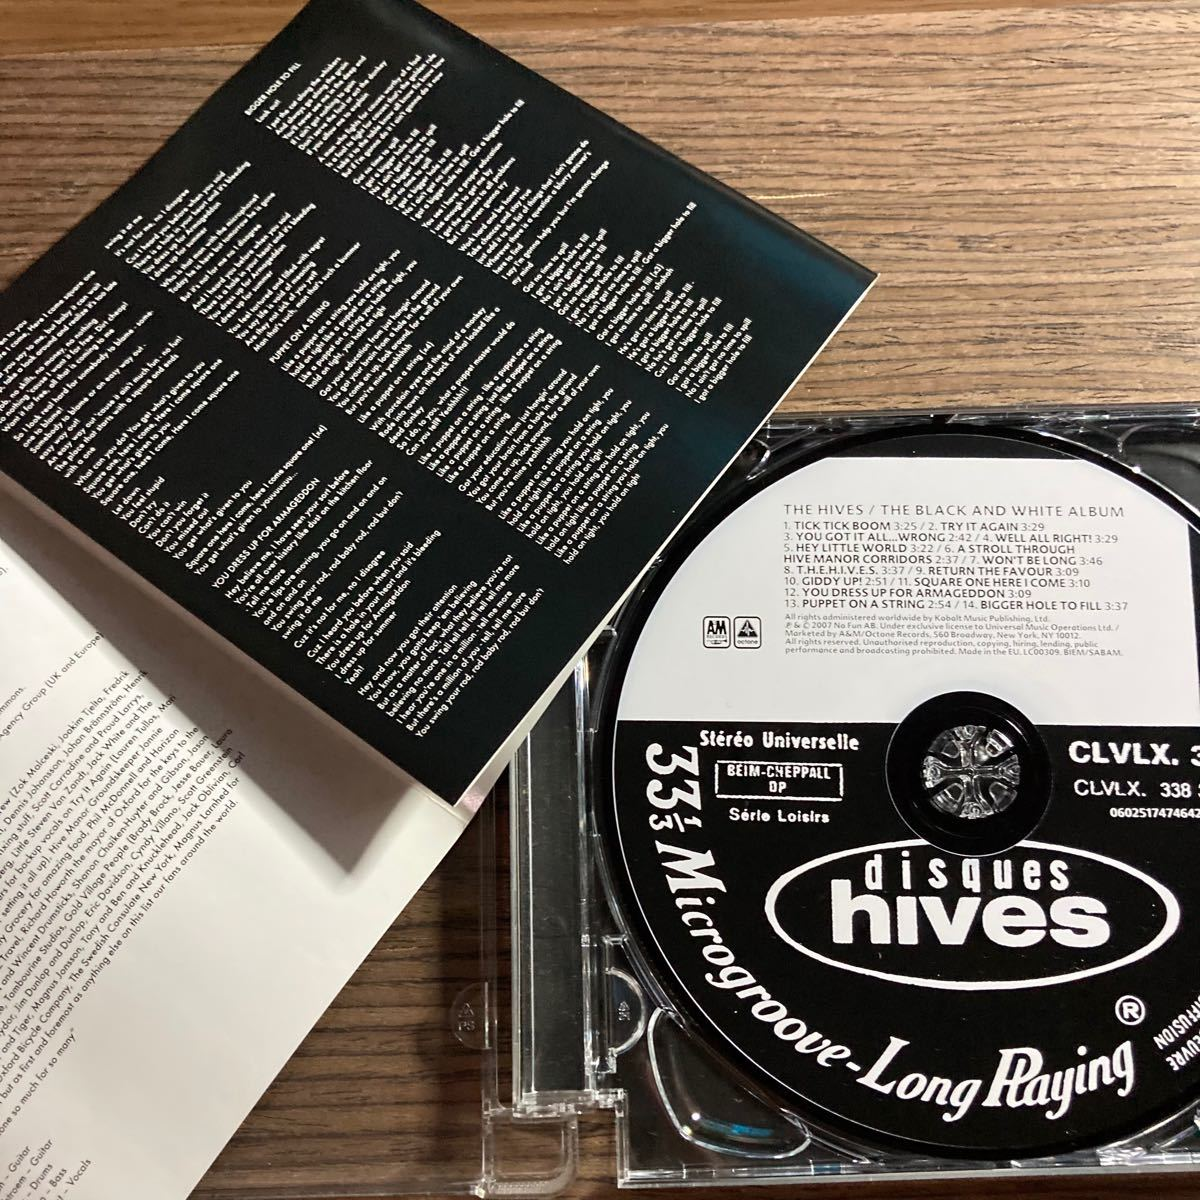 THE HIVES / THE BLACK AND WHITE ALBUM